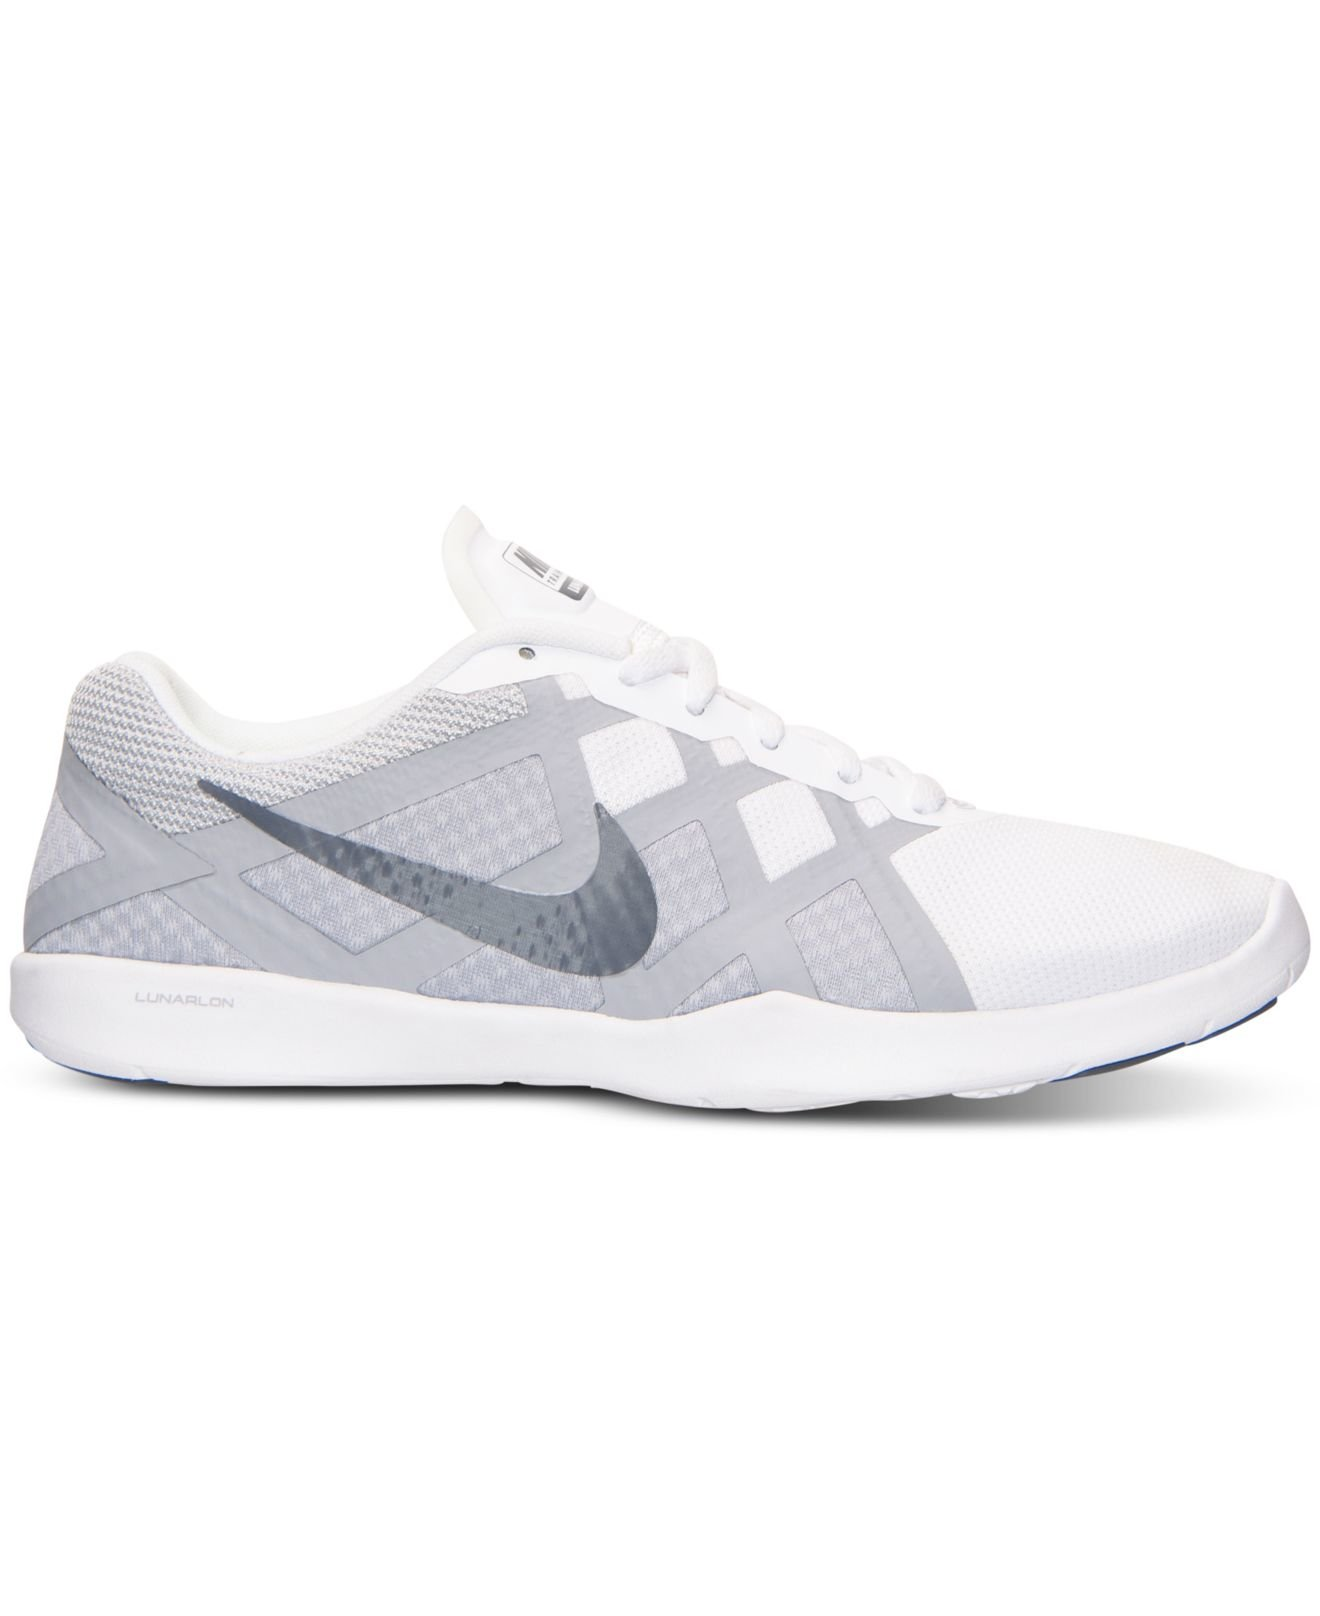 a9c9947b59a1 ... Lyst - Nike Womens Lunar Lux Tr Training Sneakers From Finis ...